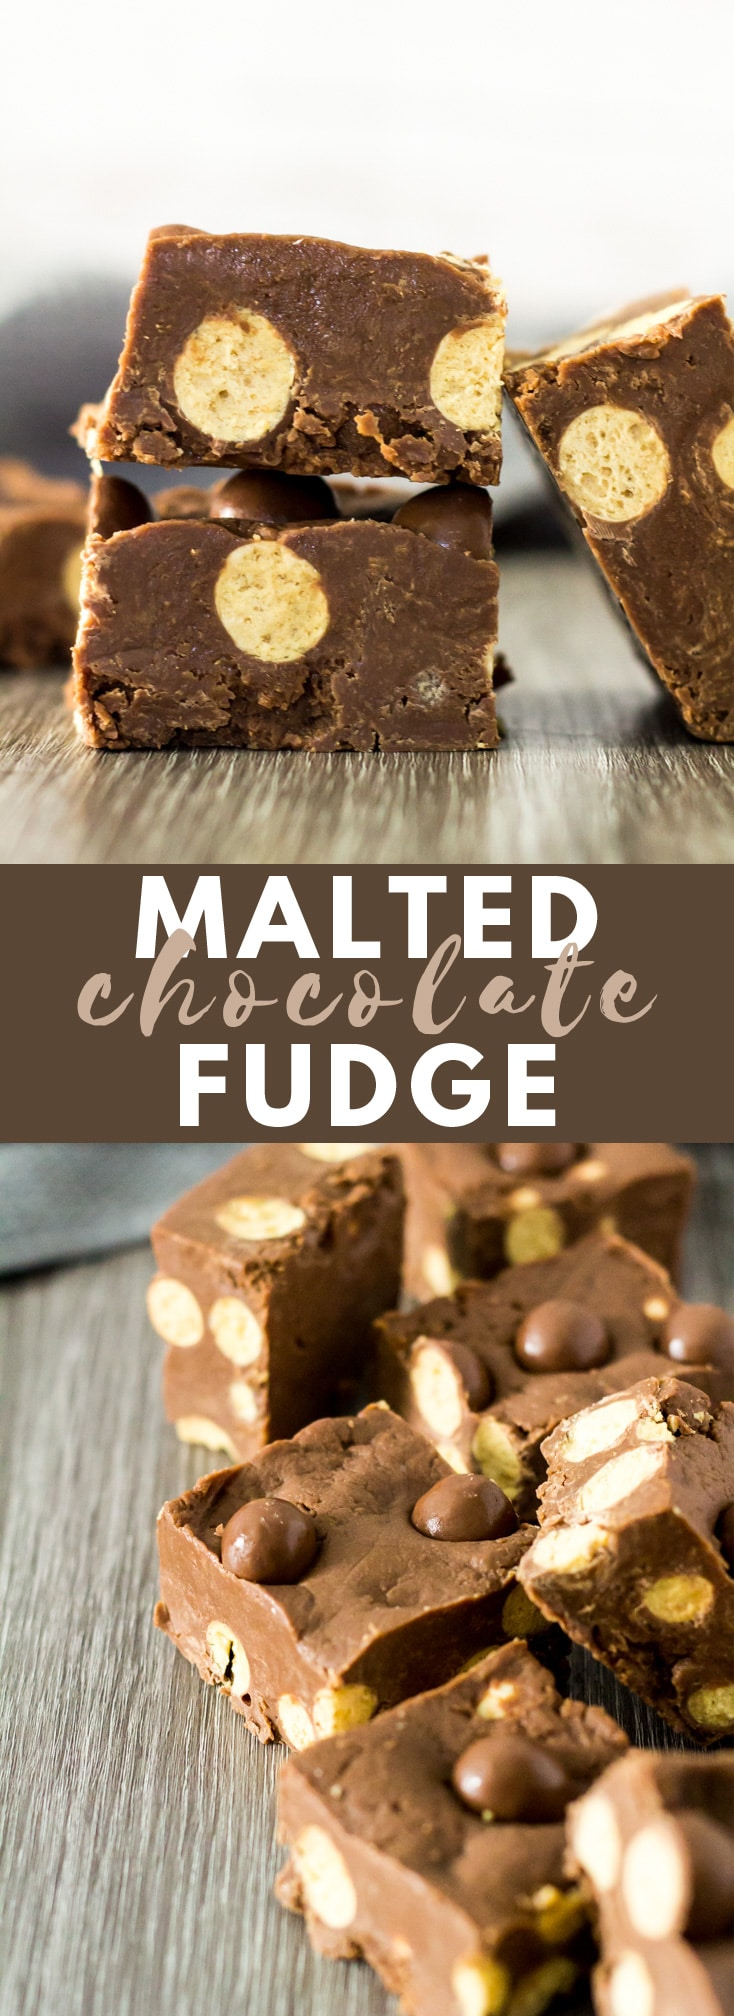 Malted Chocolate Fudge - Deliciously thick and creamy chocolate fudge that is flavoured with malted milk powder, loaded with Maltesers, and only requires 5 simple ingredients!